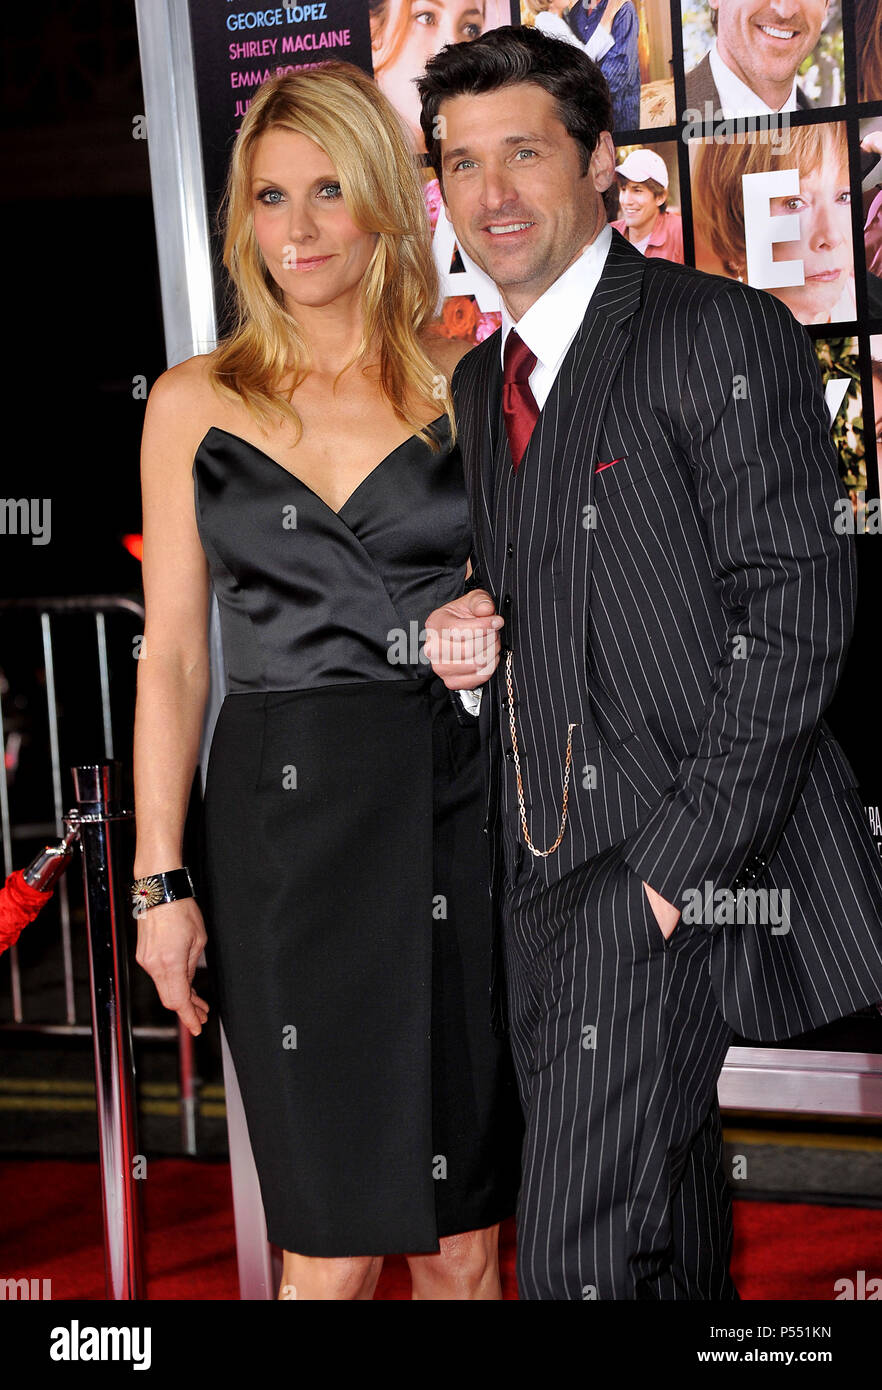 Patrick Dempsey Wife 45 Valentineõs Day Premiere At The Chinese